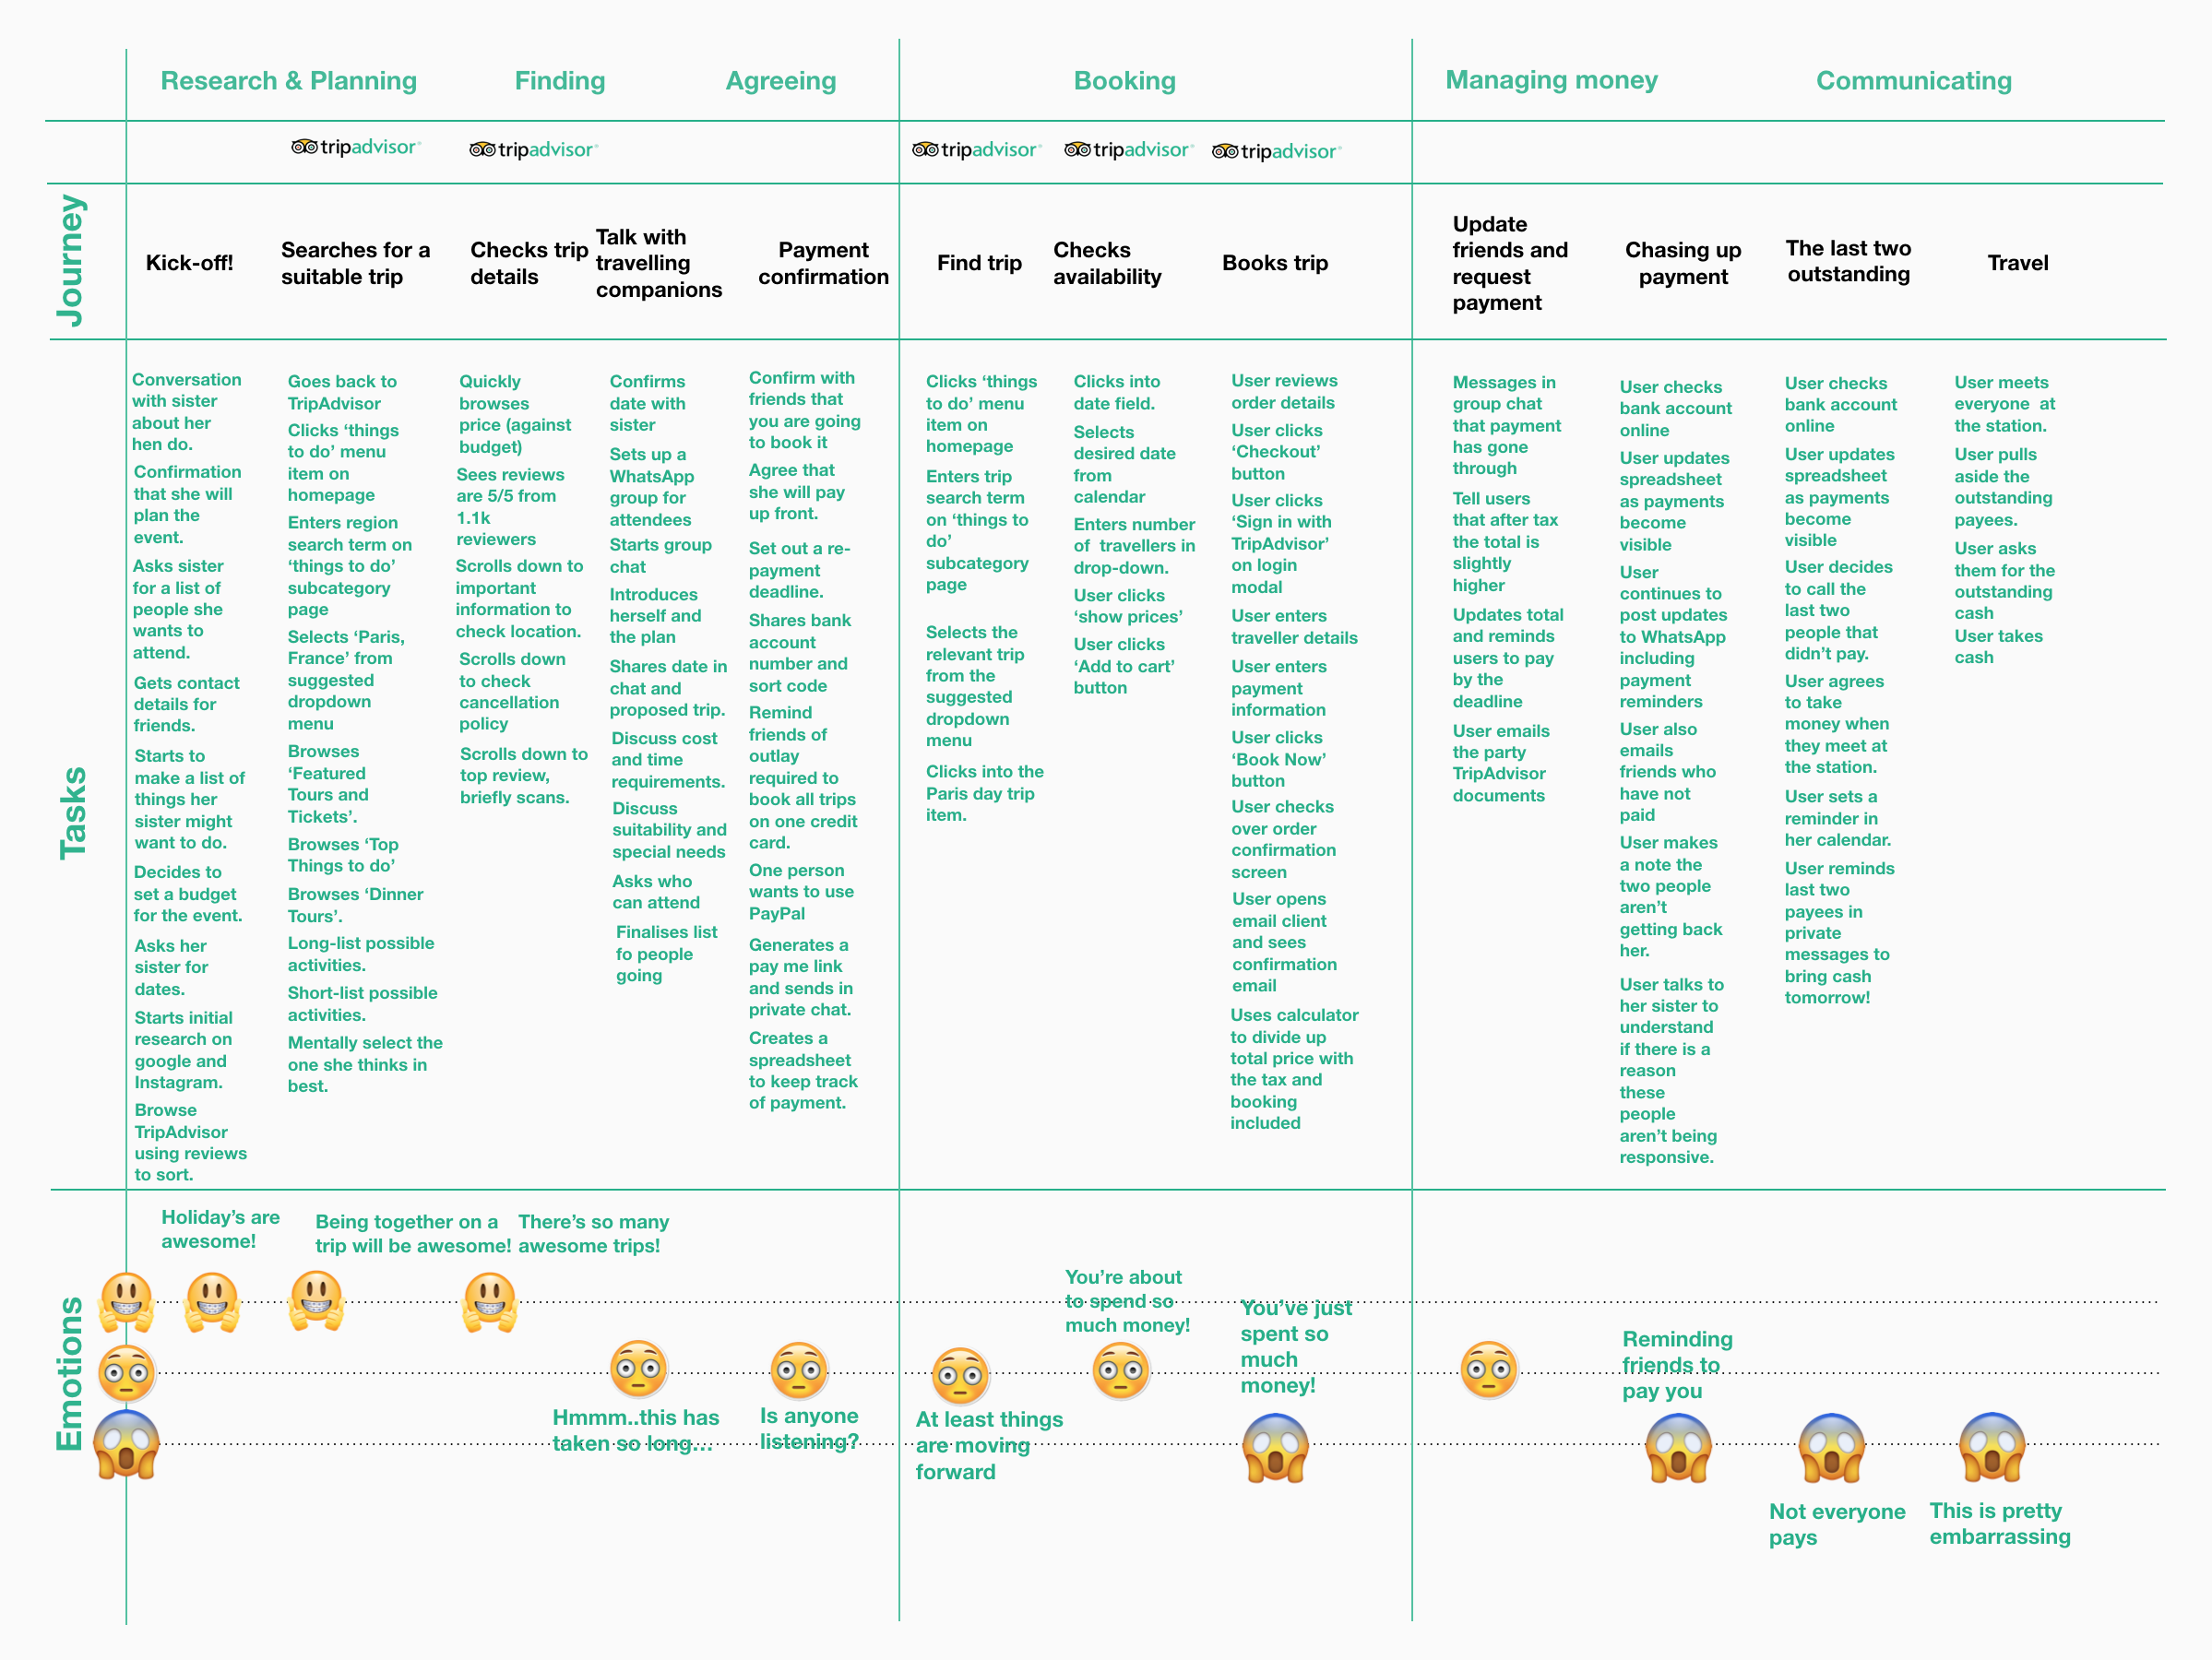 Mapping the user journey - Having completed our full research we found that we needed to revisit the experience map and add in additional tasks across each phase of the user journey. For example we found it was very typical that users would set up a WhatsApp group for the party to build consensus in the Finding/Agreeing phases.